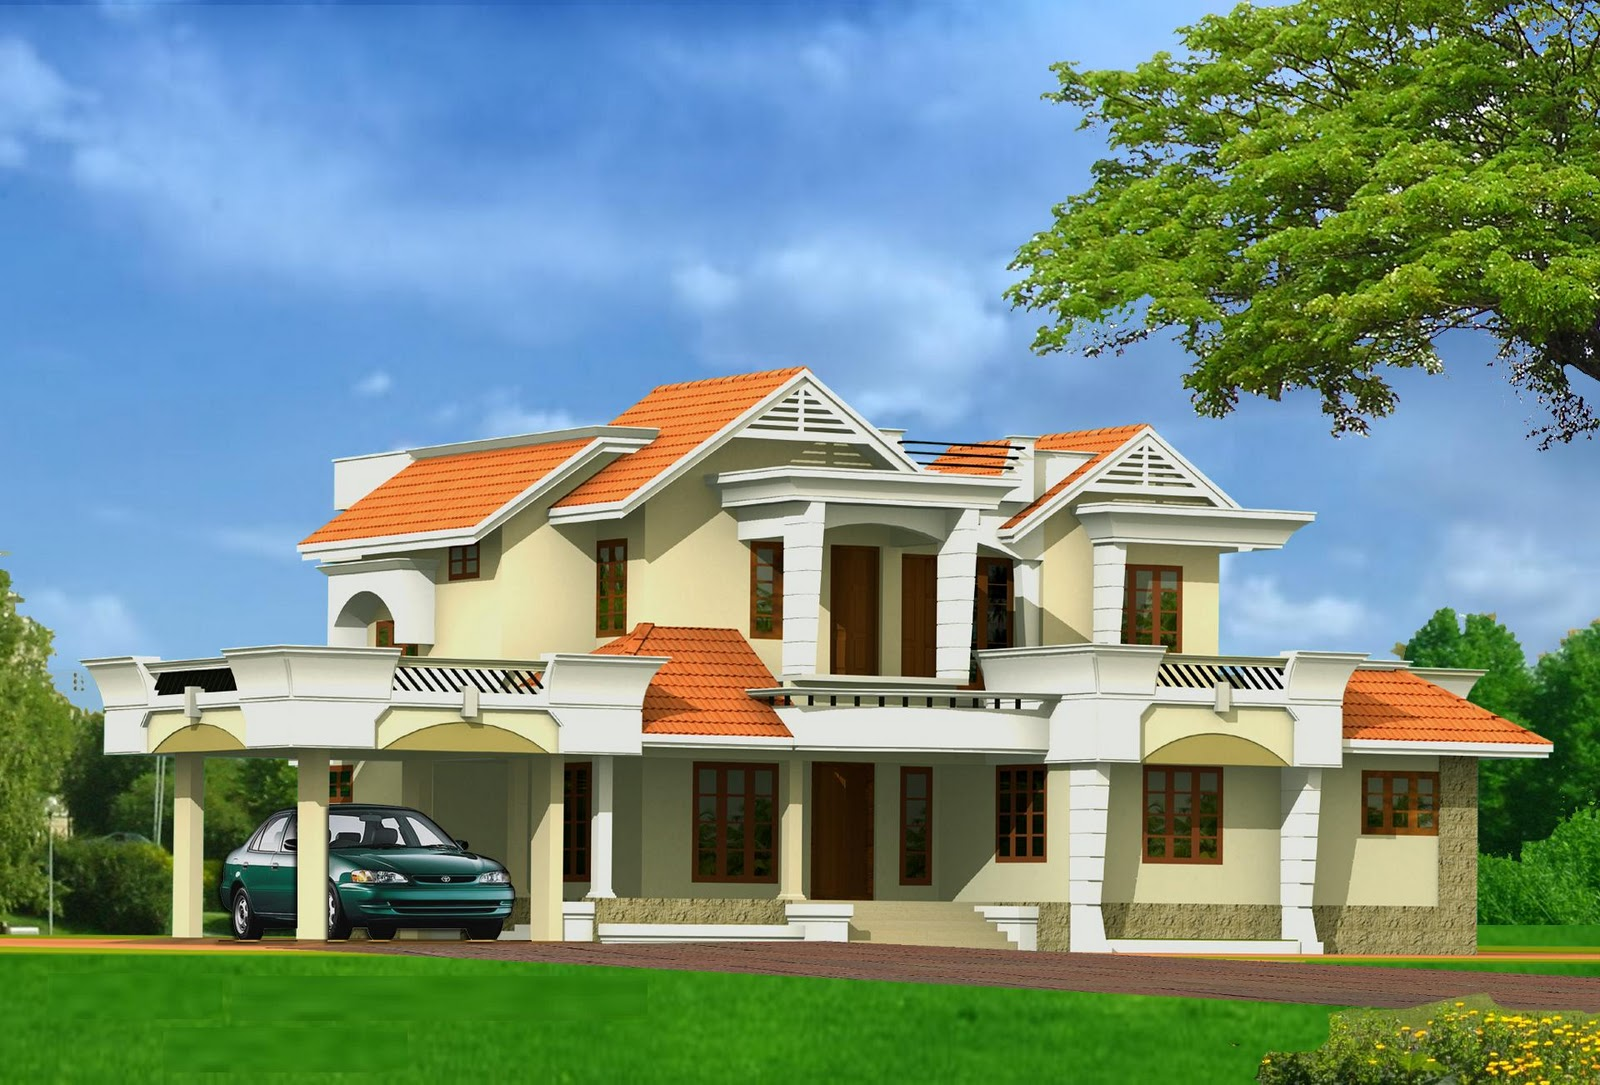 House plans and design architectural designs of for House structure design